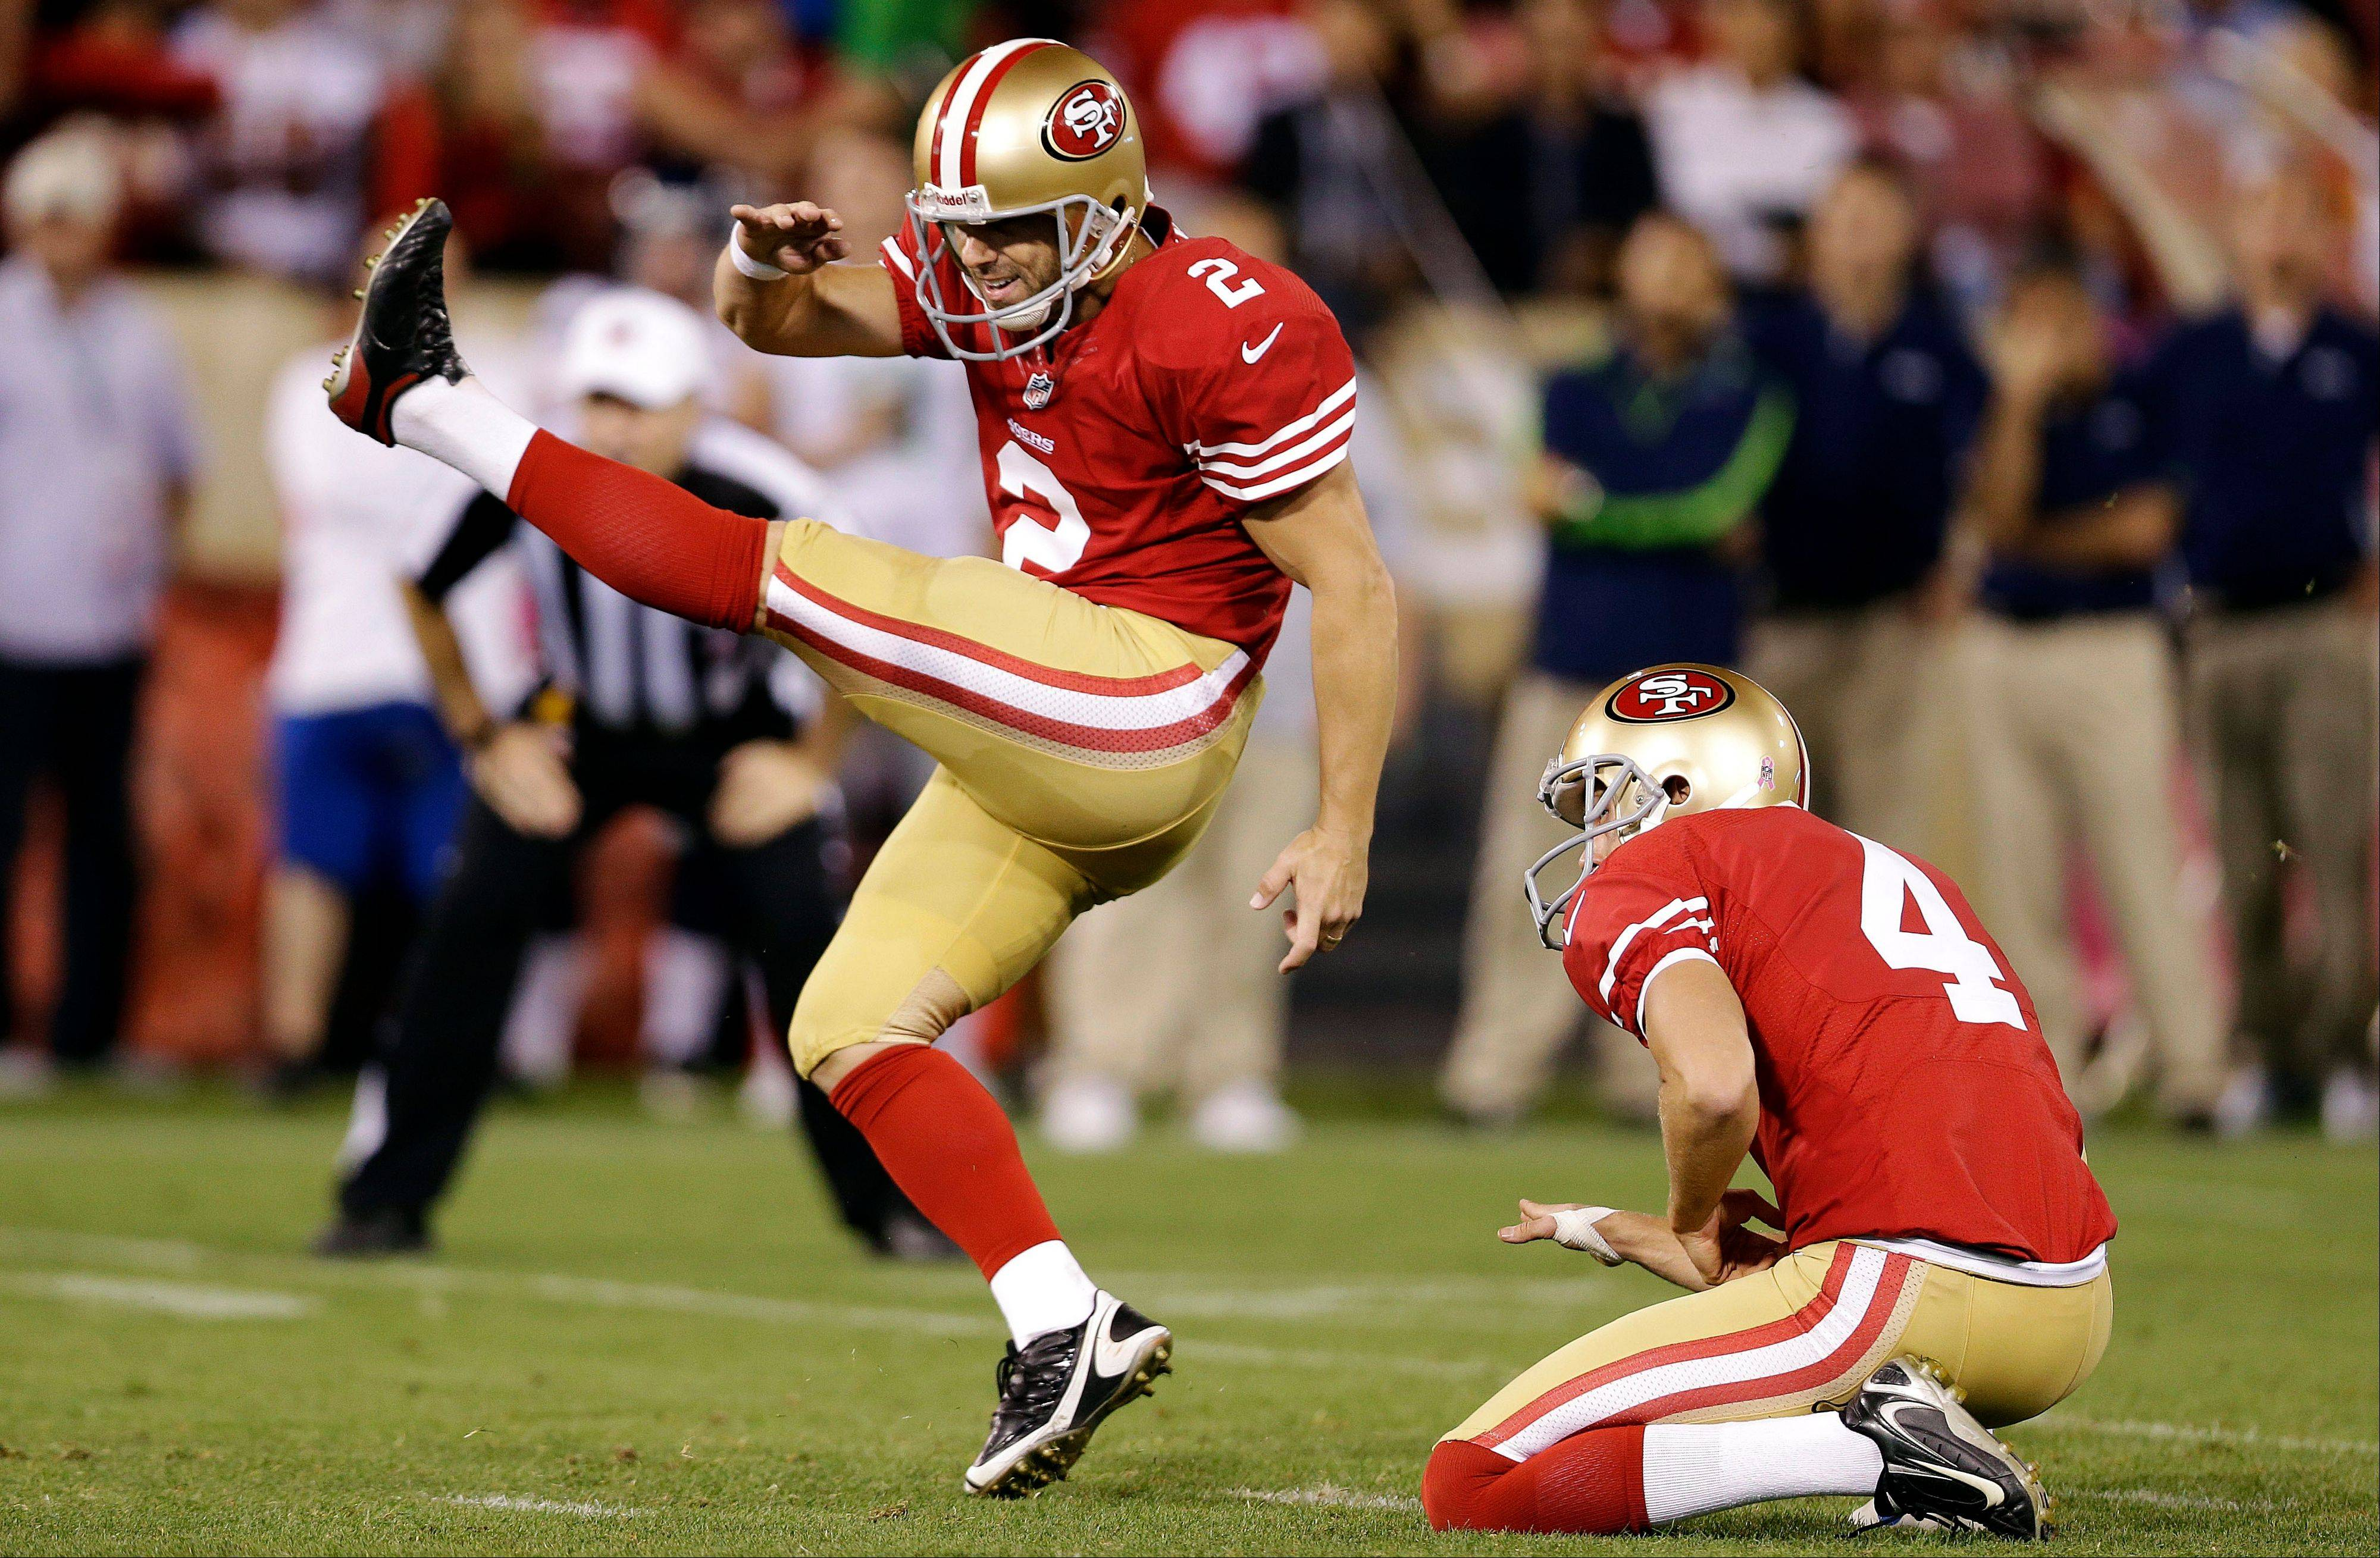 San Francisco 49ers place kicker David Akers (2) makes a field goal as punter Andy Lee (4) holds during the fourth quarter of an NFL football game against the Seattle Seahawks in San Francisco, Thursday, Oct. 18, 2012. The 49ers won 13-6.